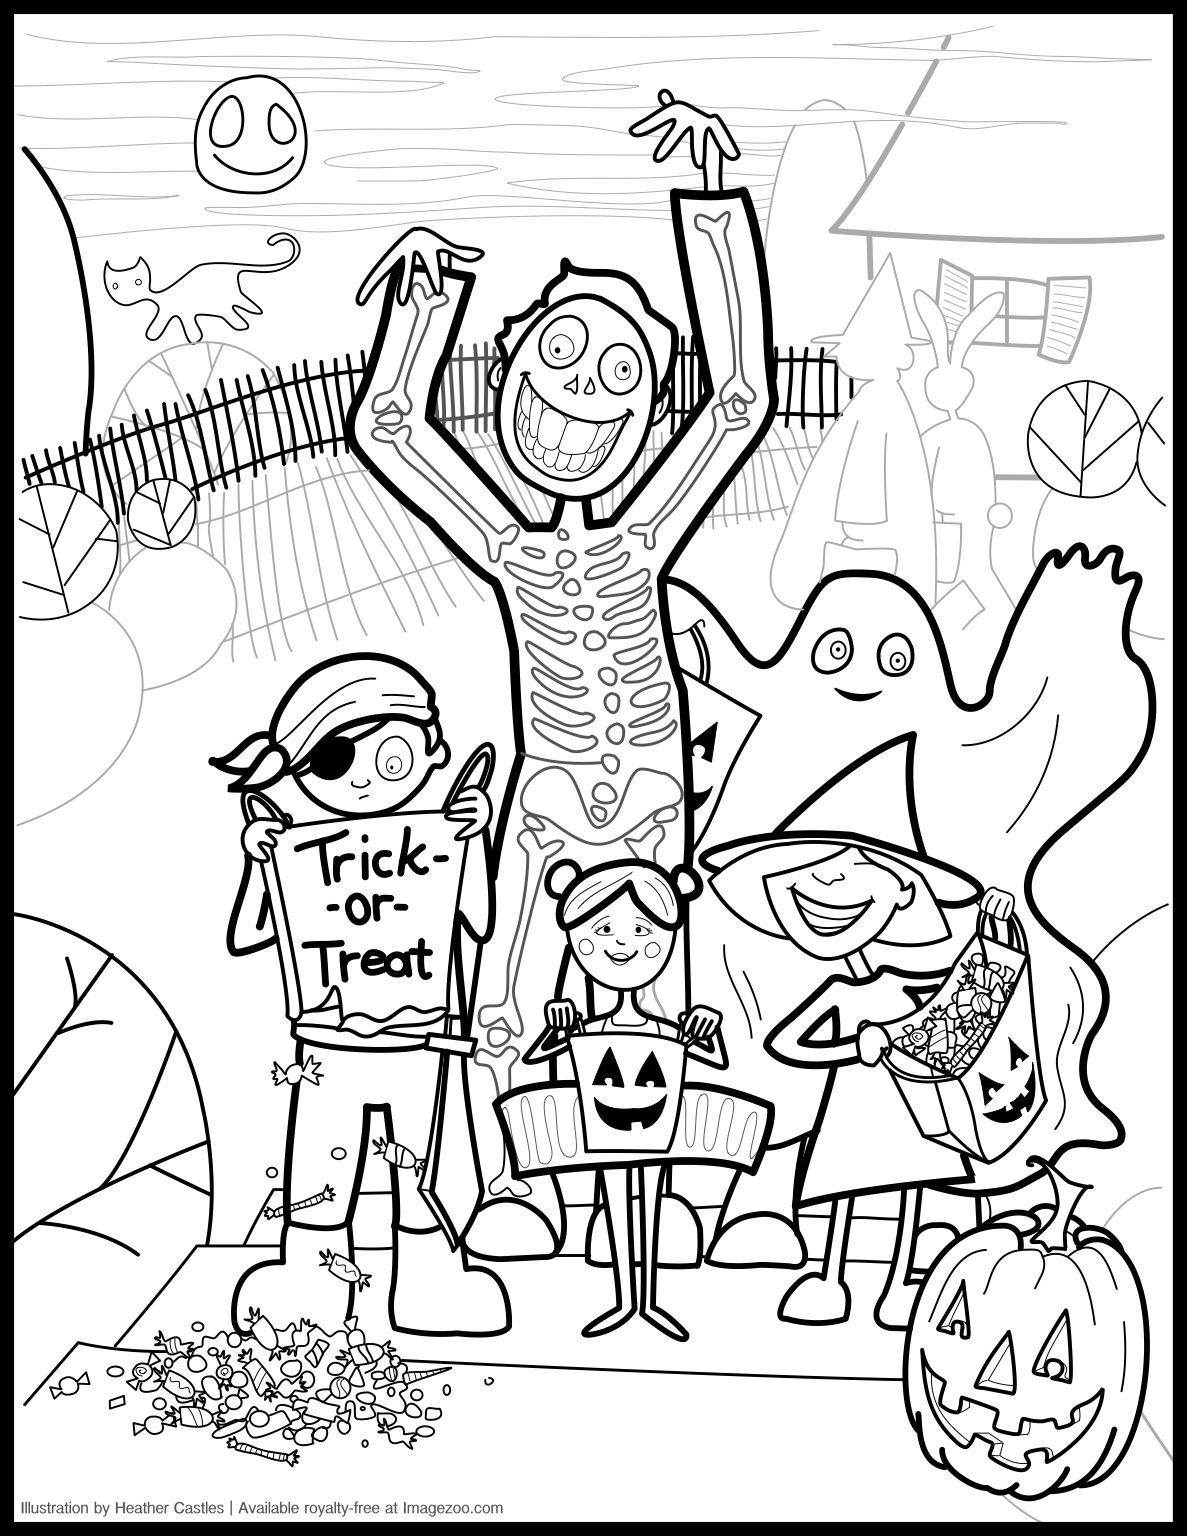 Free Halloween Drawing at GetDrawings.com | Free for personal use ...